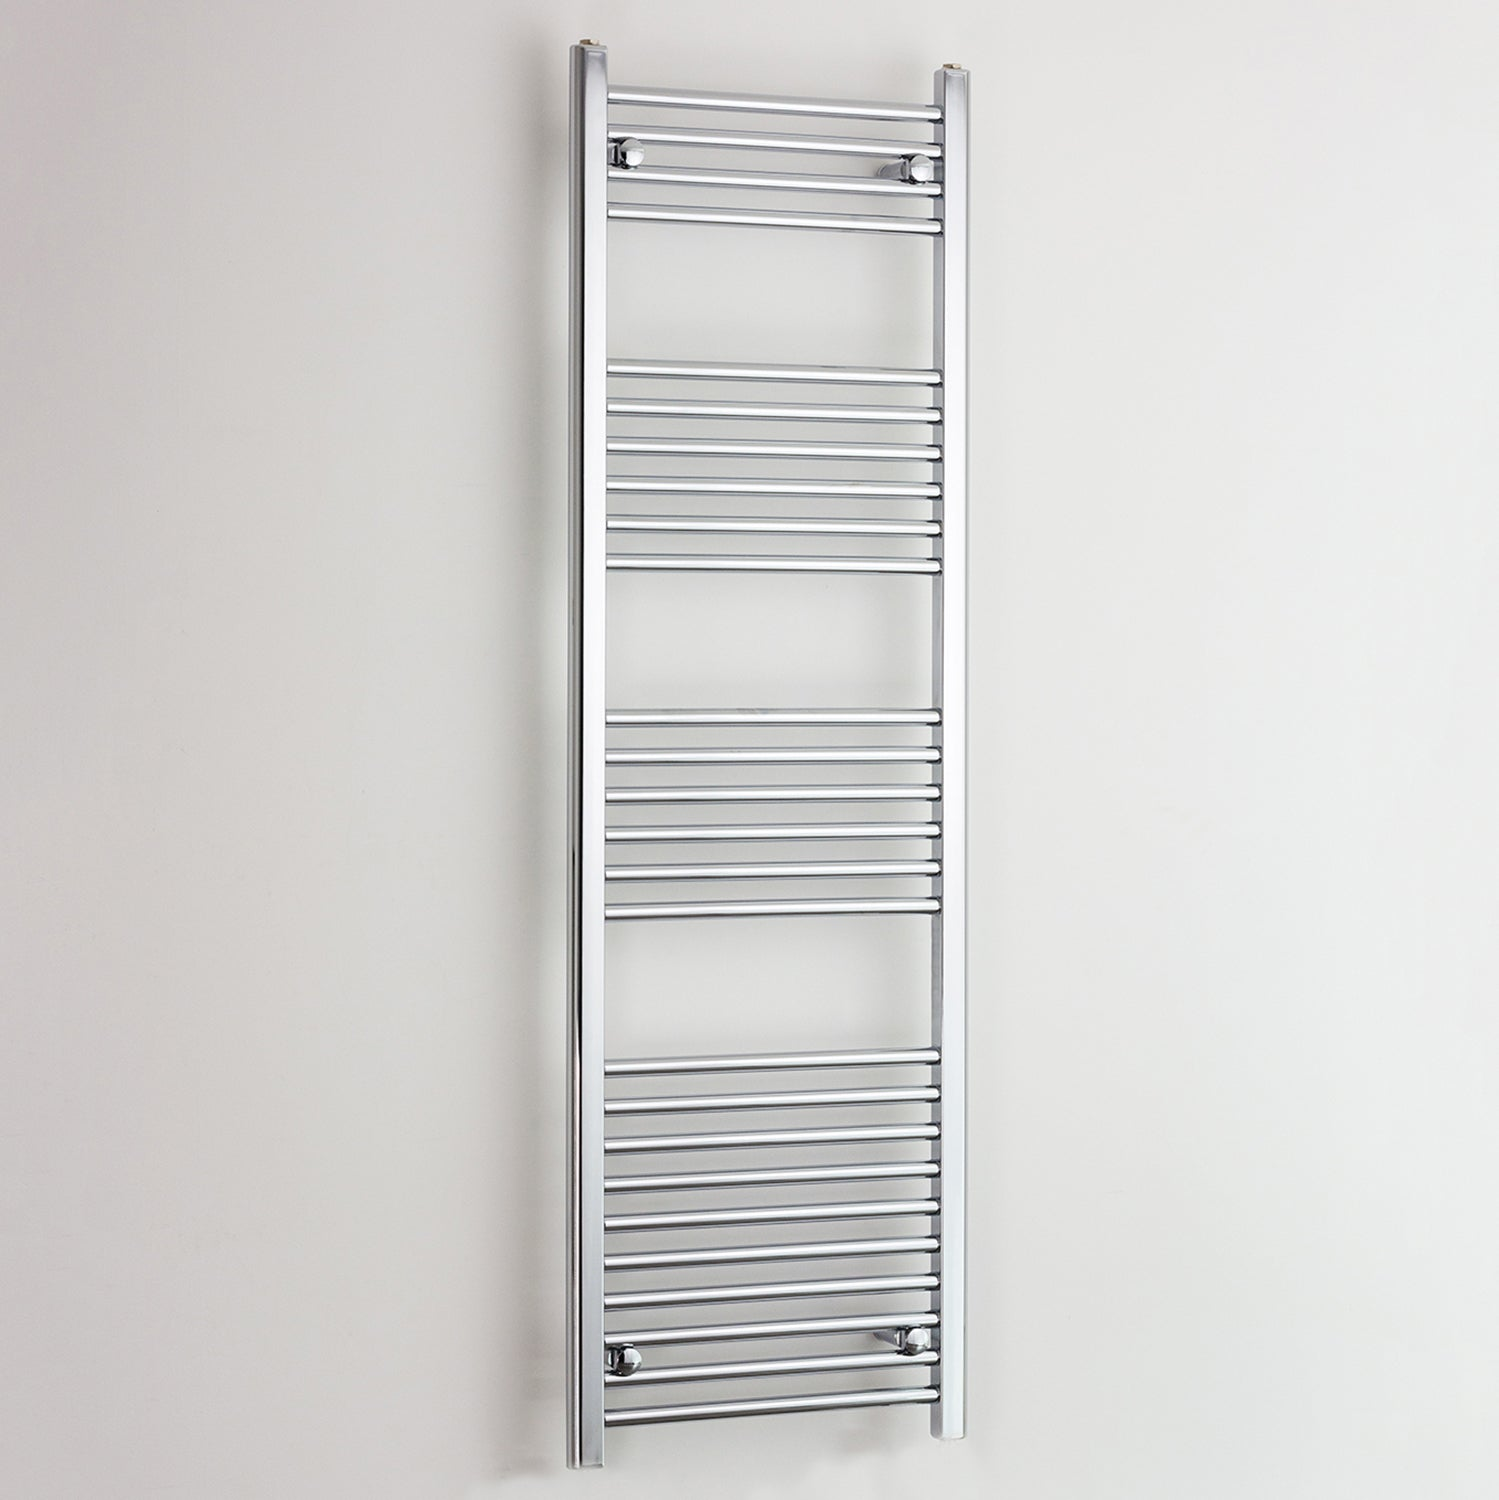 400mm Wide 1600mm High Chrome Towel Rail Radiator